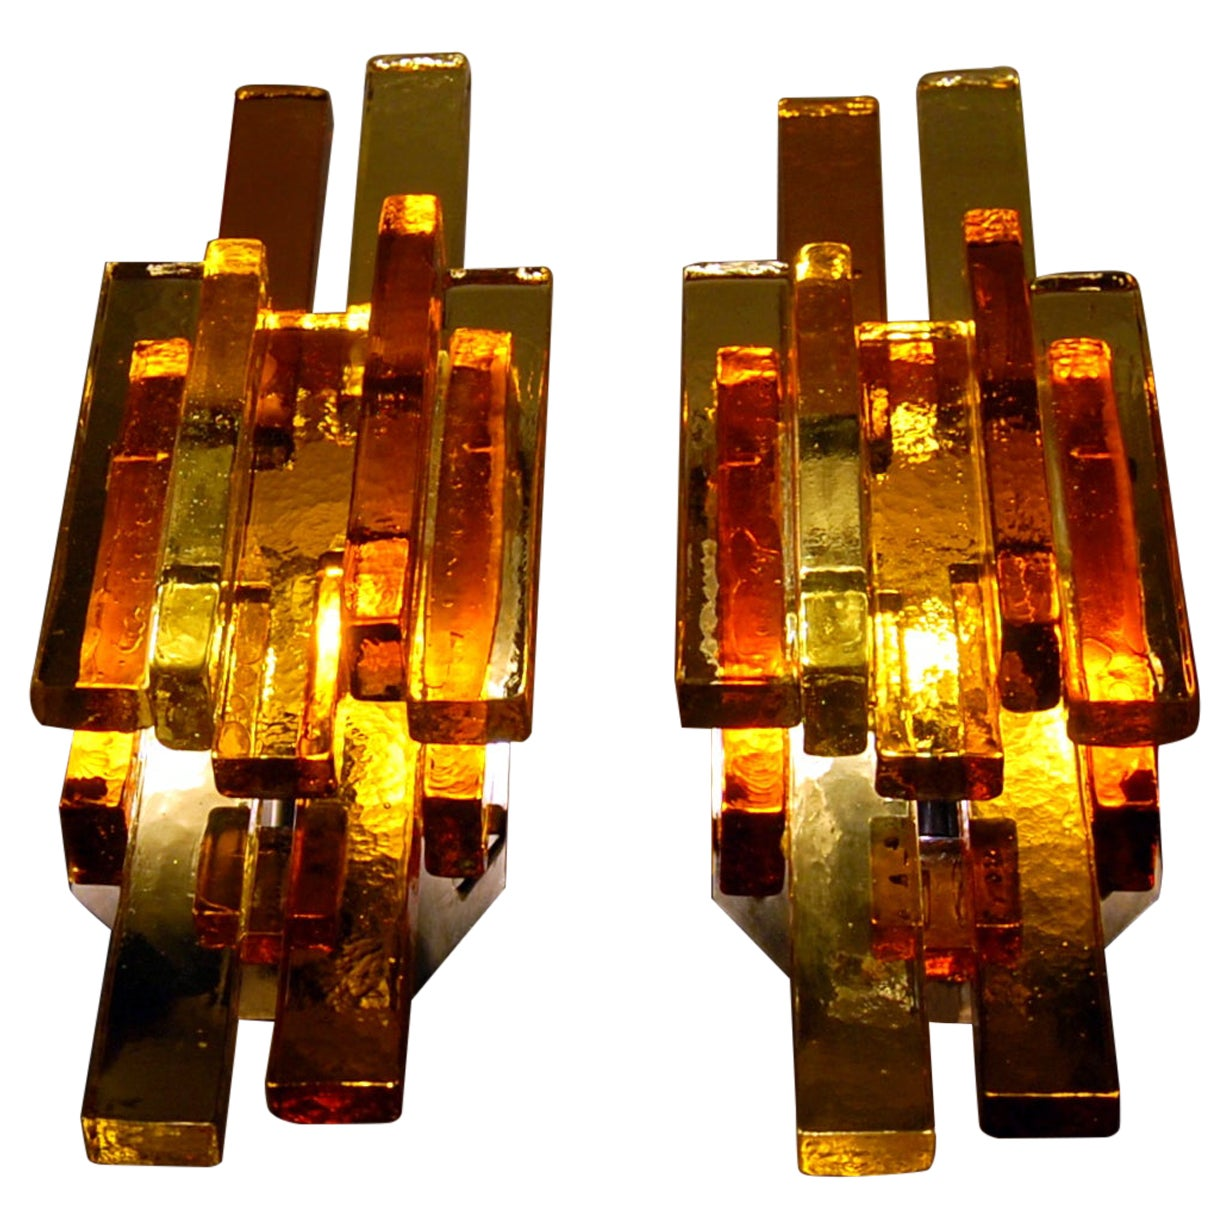 Pair of Glass Wall Sconces by Svend Aage Holm Sørensen, 1960s